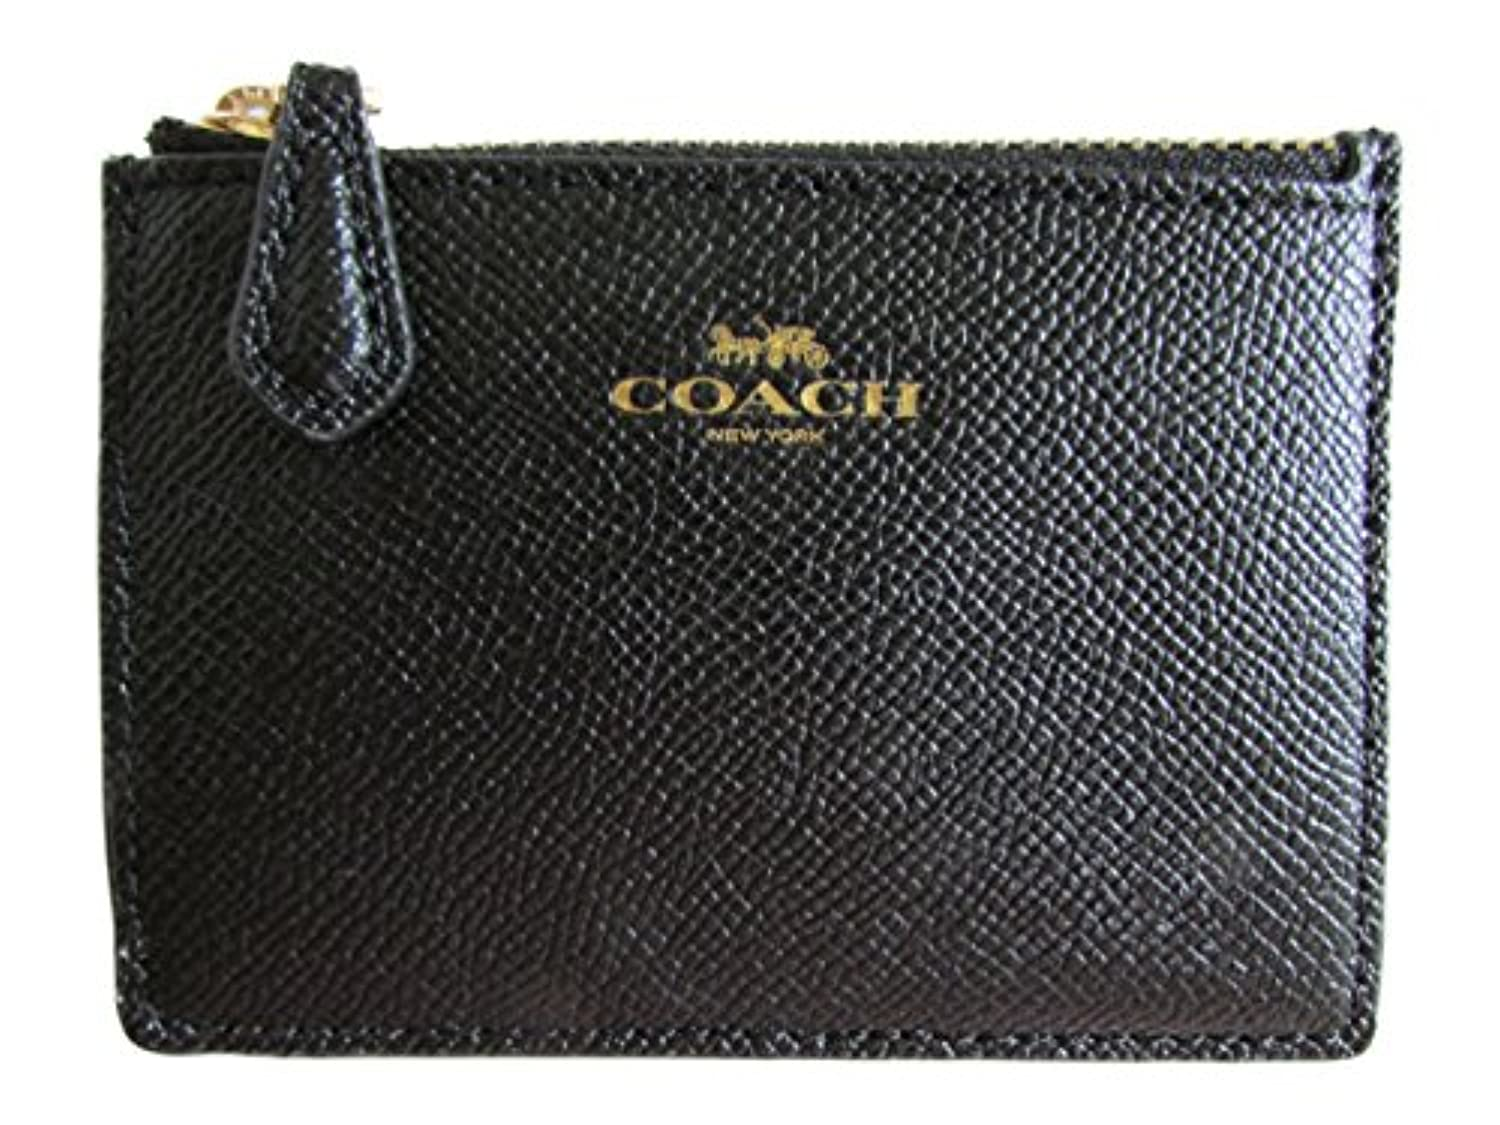 コーチ 小銭入れ IDケース クロスグレイン COACH Crossgrain Leather Mini ID Skinny F12186 IMBLK IM/Black [並行輸入品]